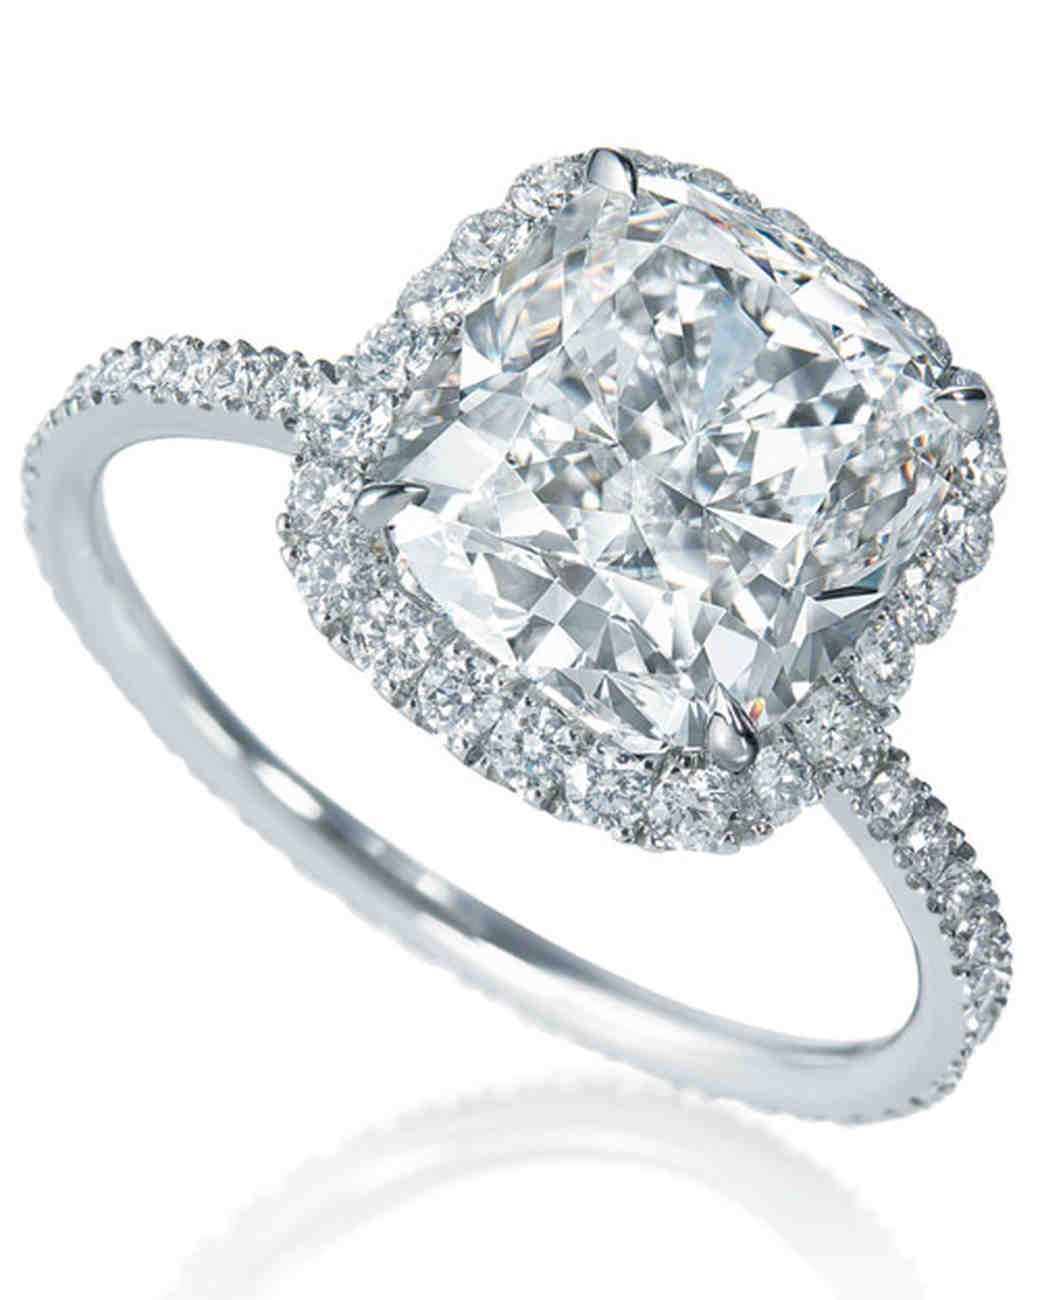 Harry Winston Micropave Cushion-Cut Diamond Engagement Ring